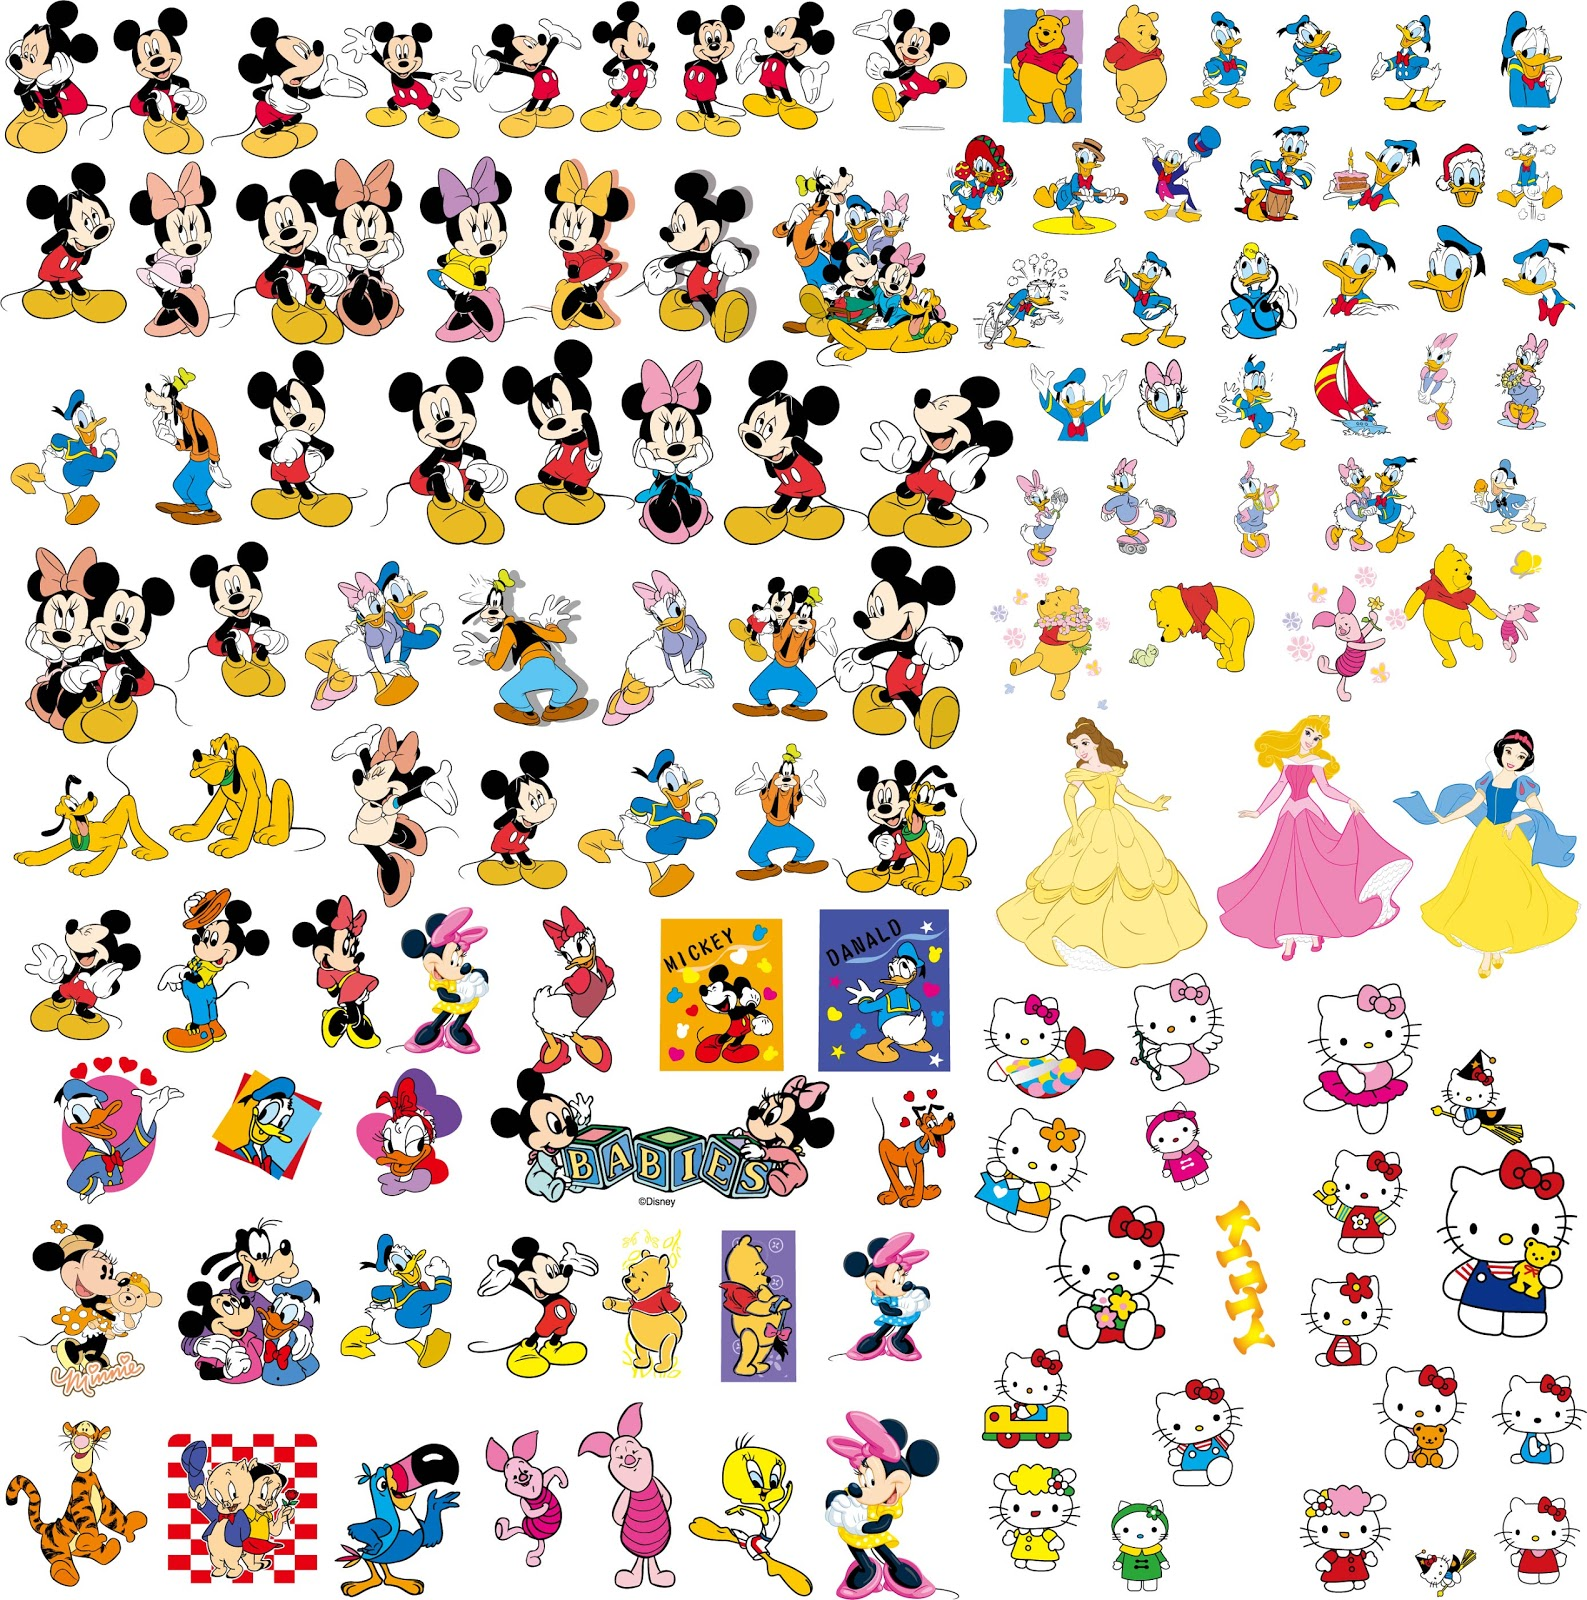 All Car Company >> Vectorian art: Disney Character Vectorfree download, free download vector, CDR, EPS, AI